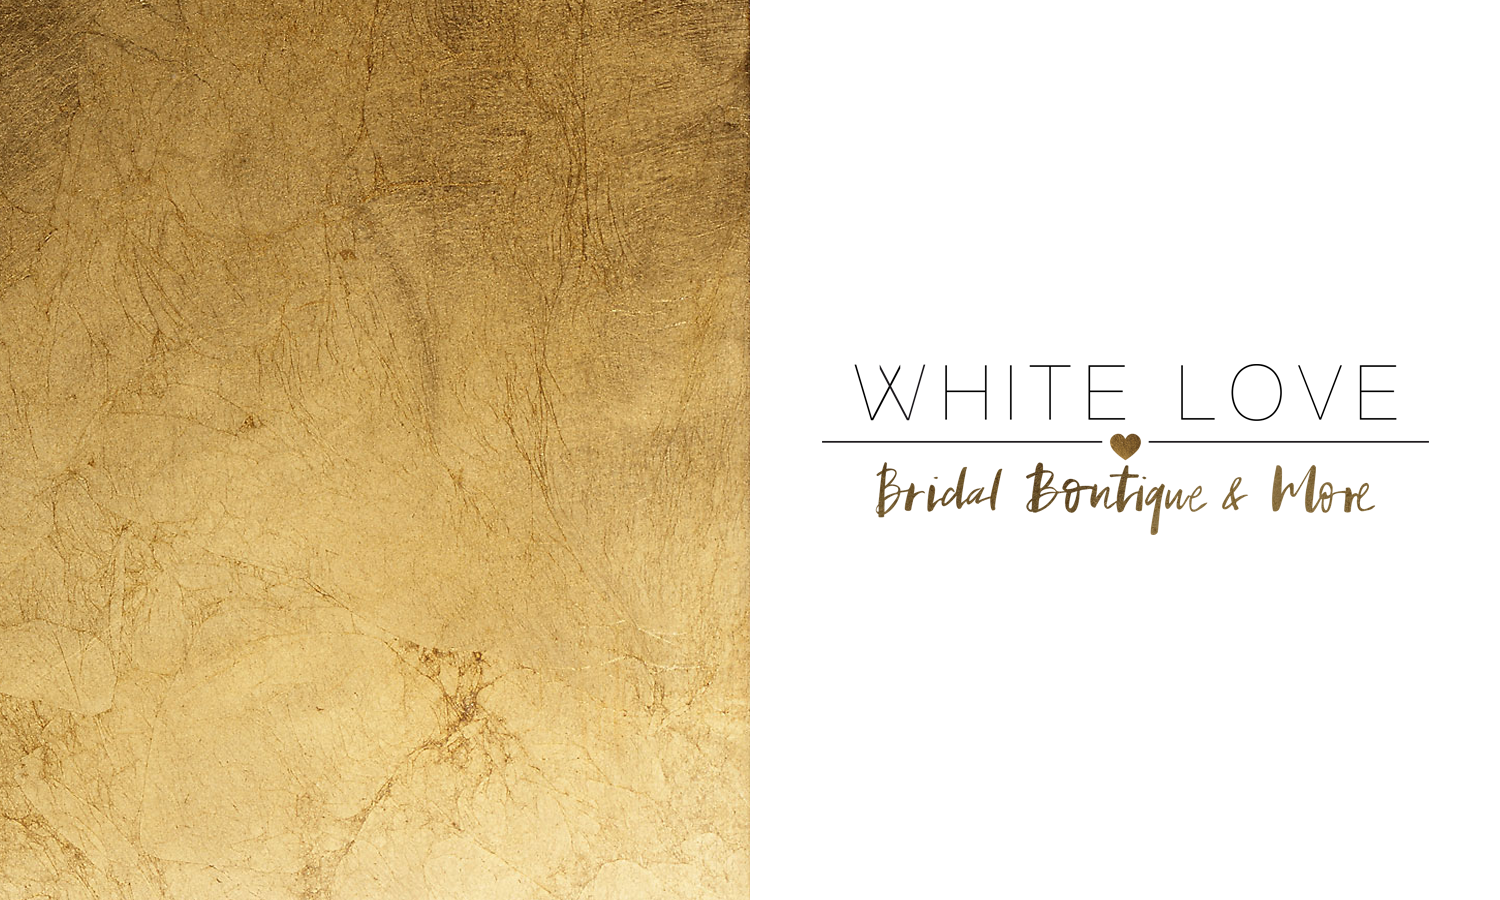 White-Love-01.png